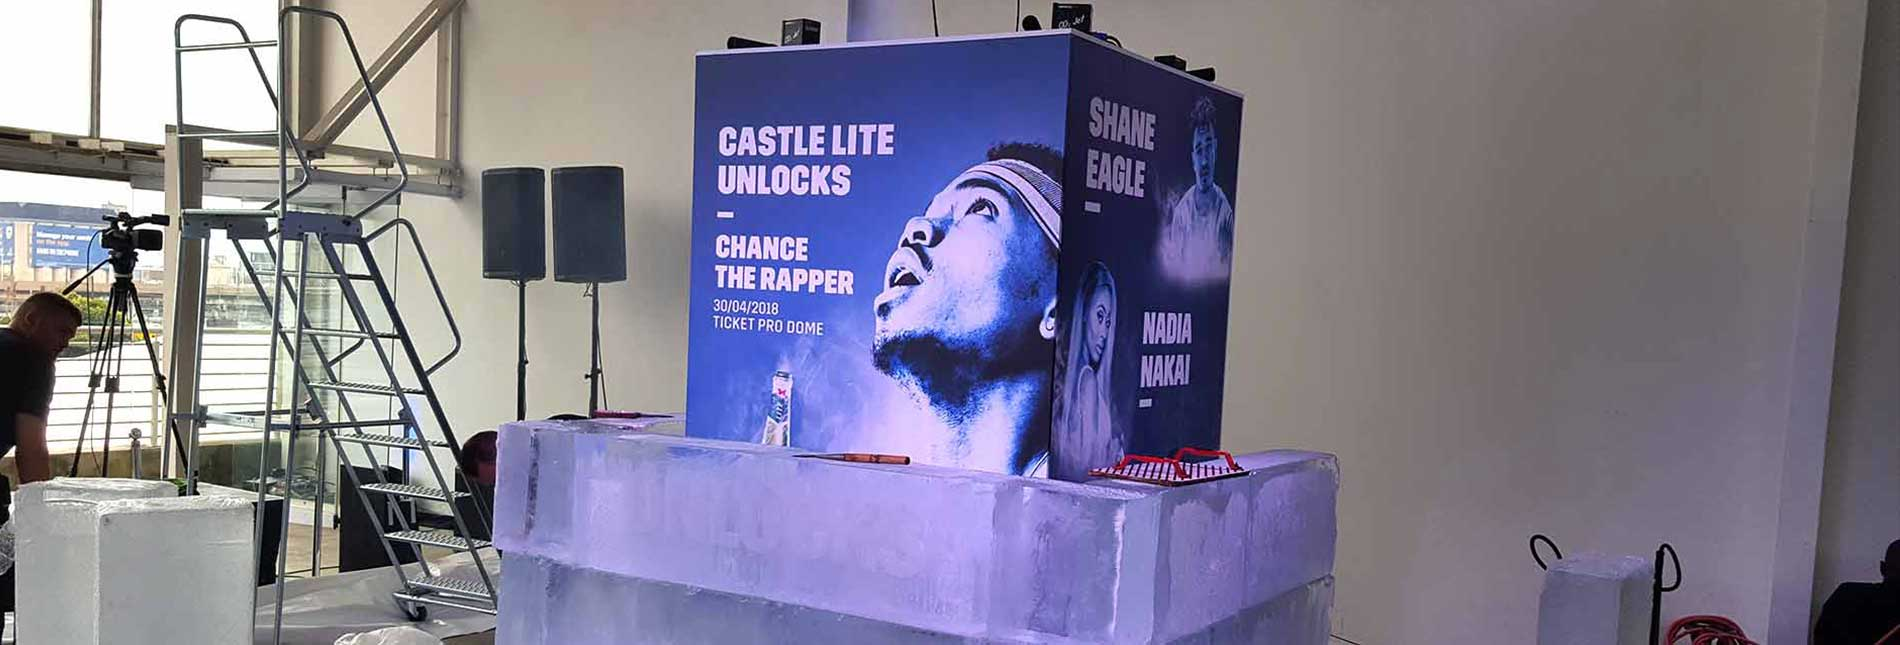 Castle Lite | Chance the Rapper